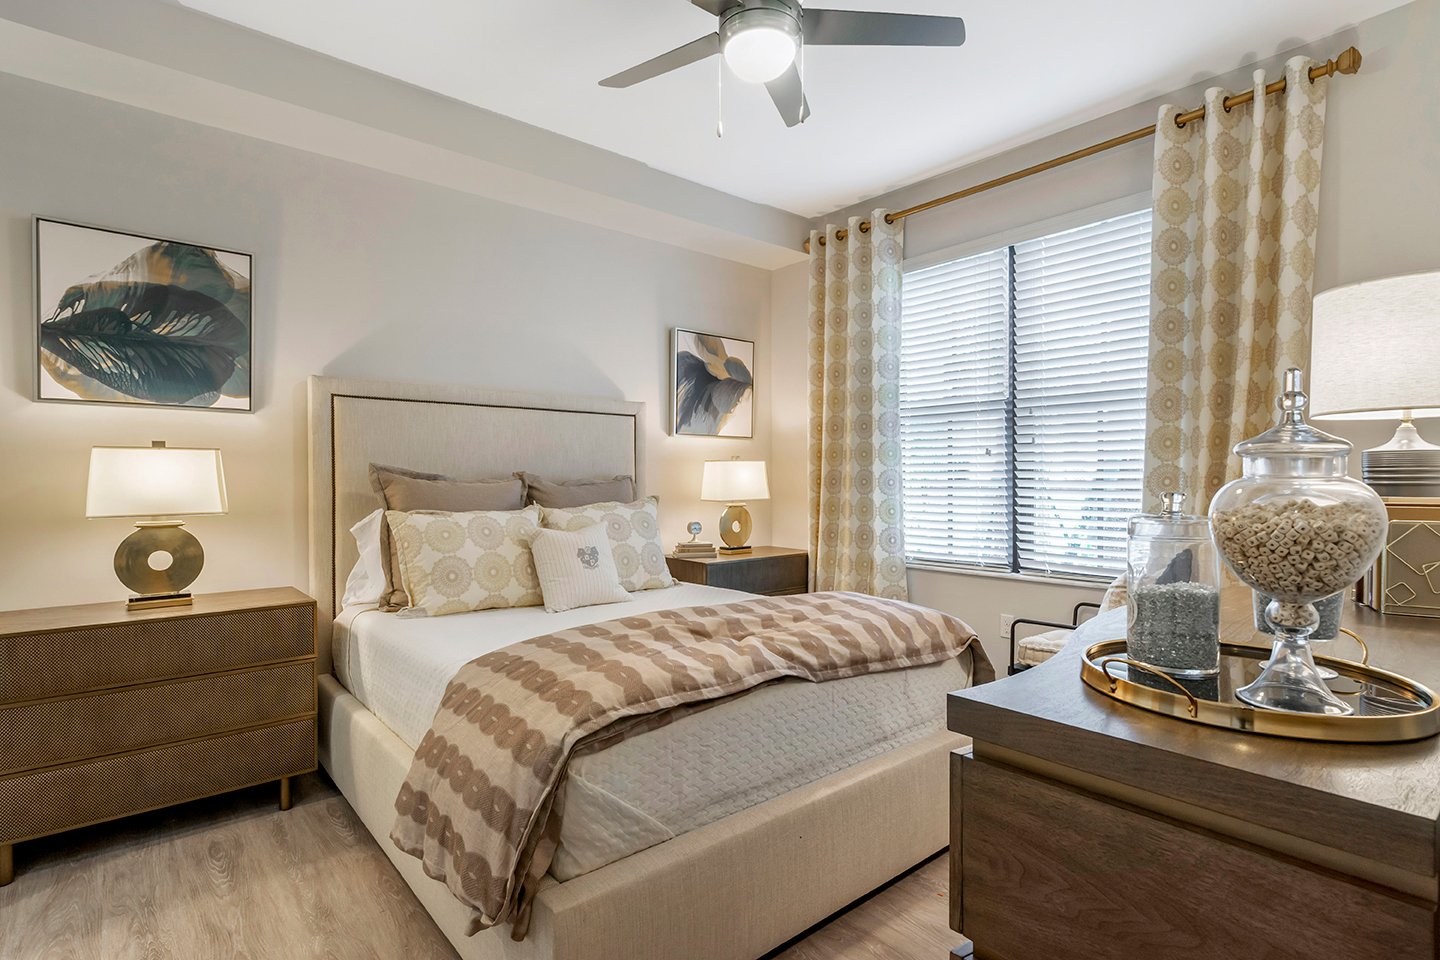 Model apartment bedroom with queen bed, end tables, large window, and ceiling fan